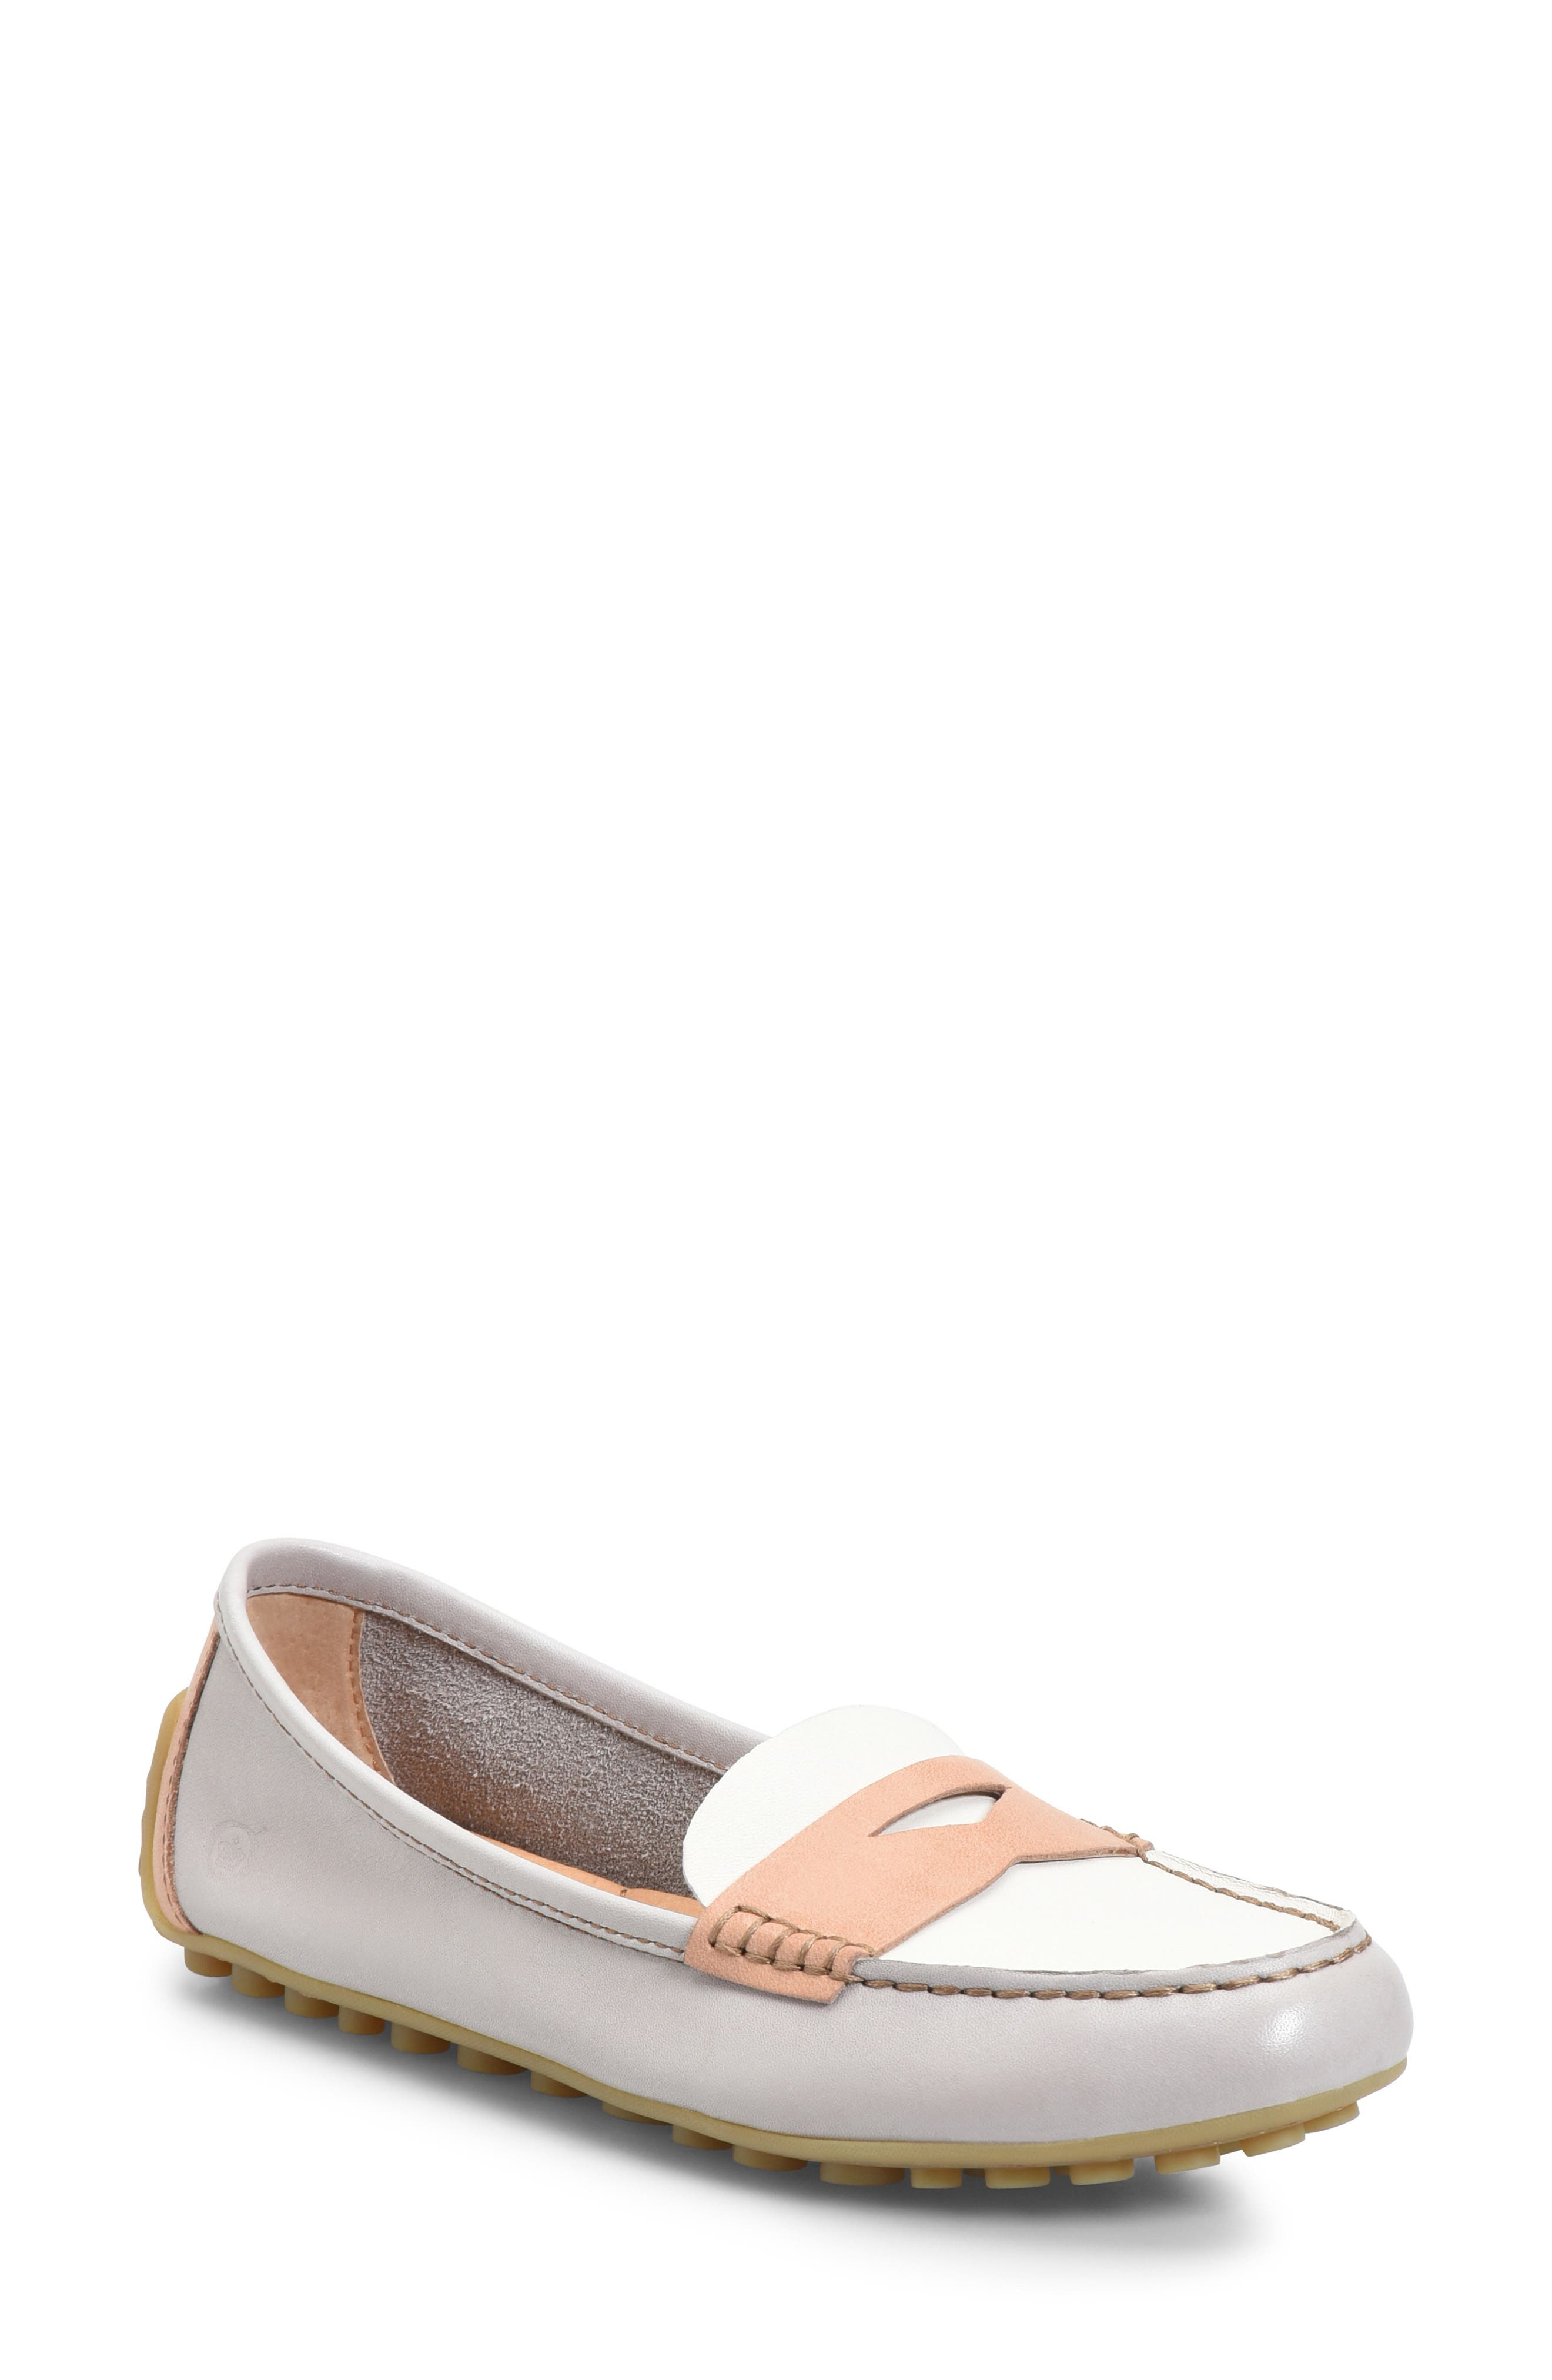 ,                             Malena Penny Loafer,                             Main thumbnail 1, color,                             LIT GREY/ WHITE/ BLUSH LEATHER